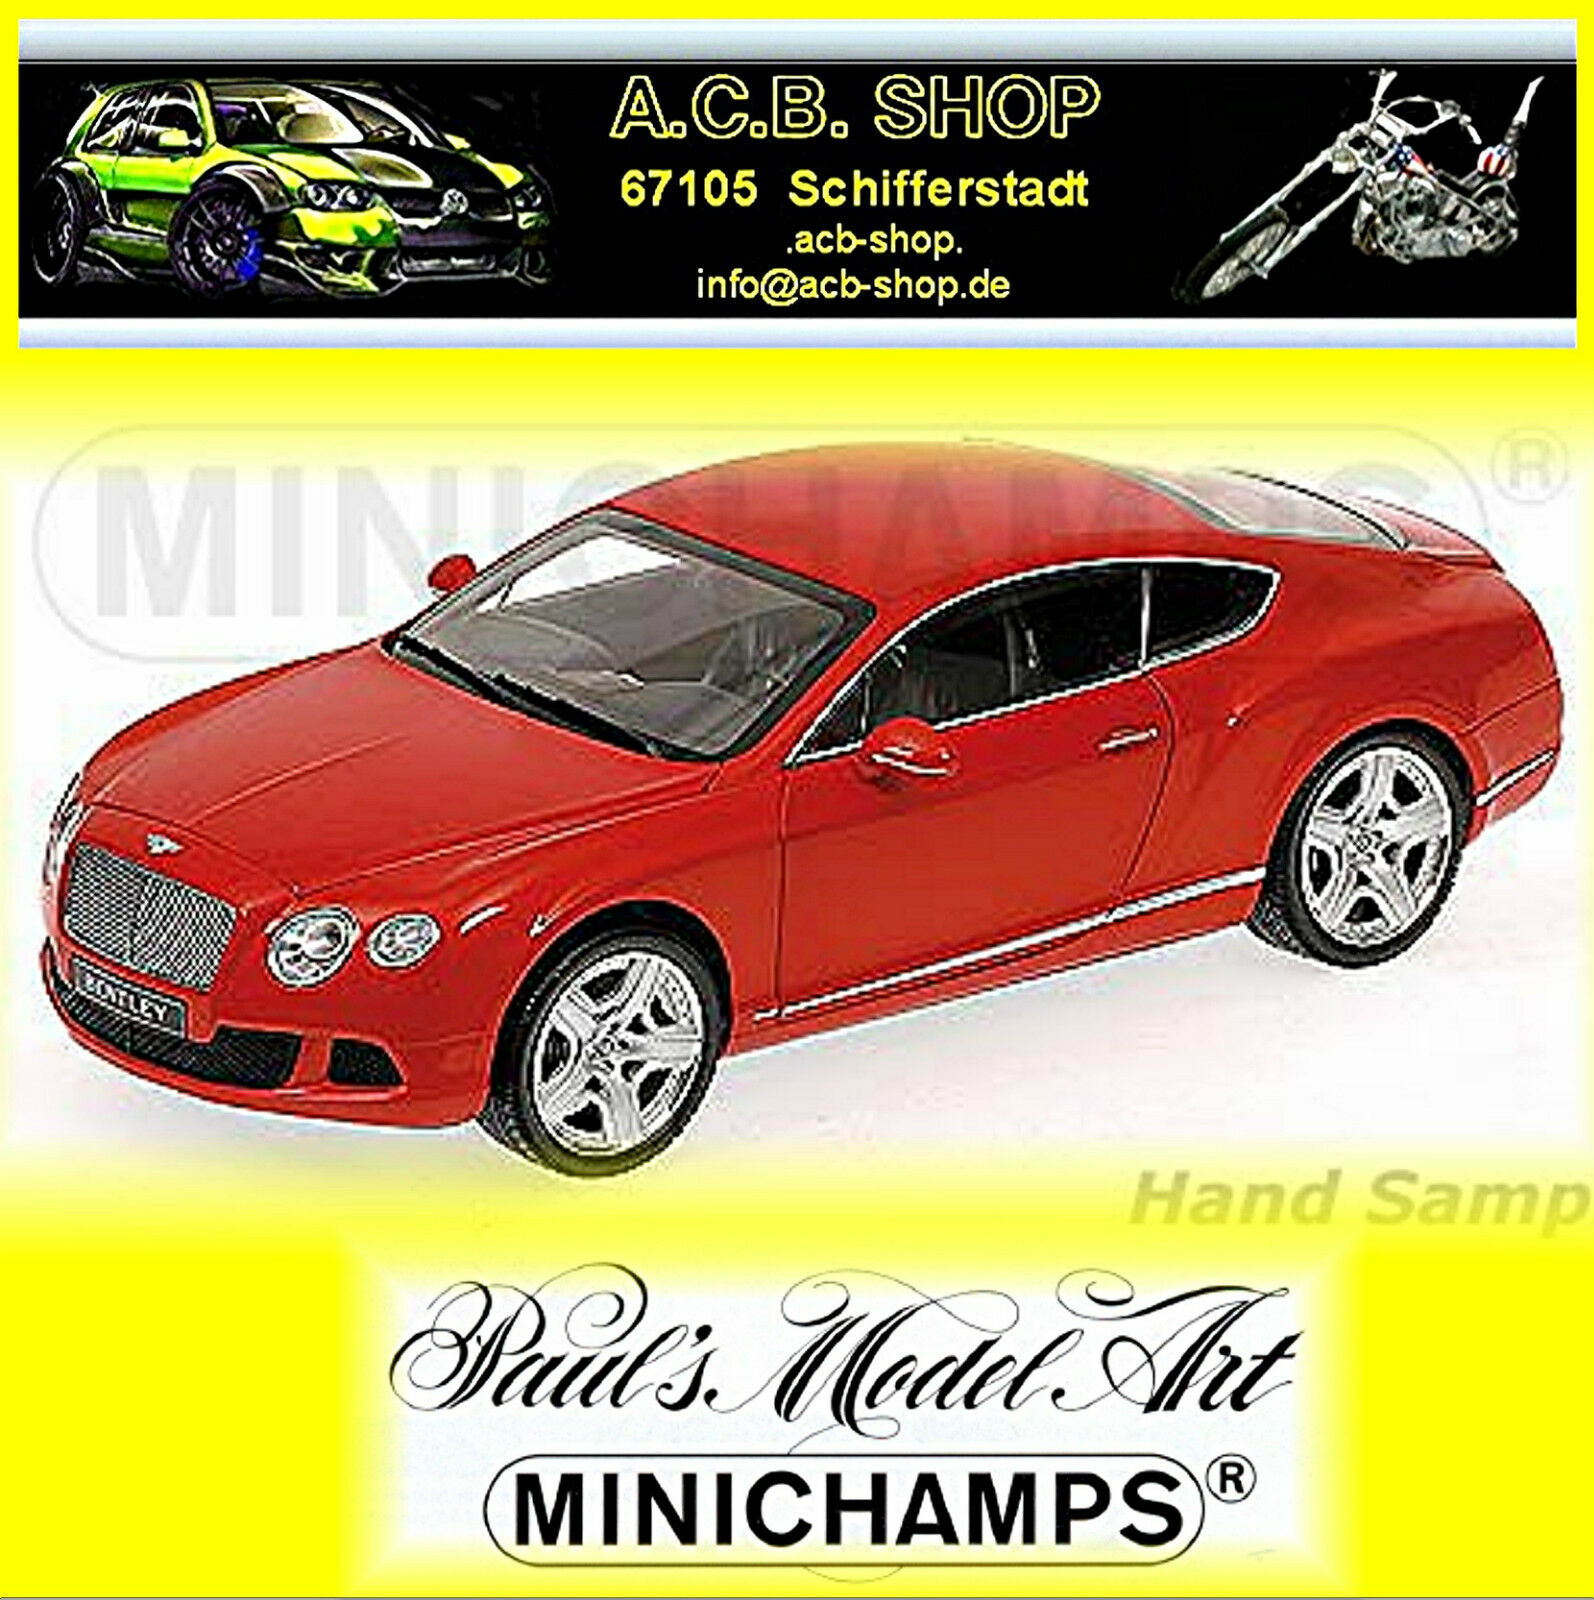 Bentley Continental GT 2011-13  rouge rouge 1 18 Minichamps Limit. Edit 750 pcs.  meilleur service